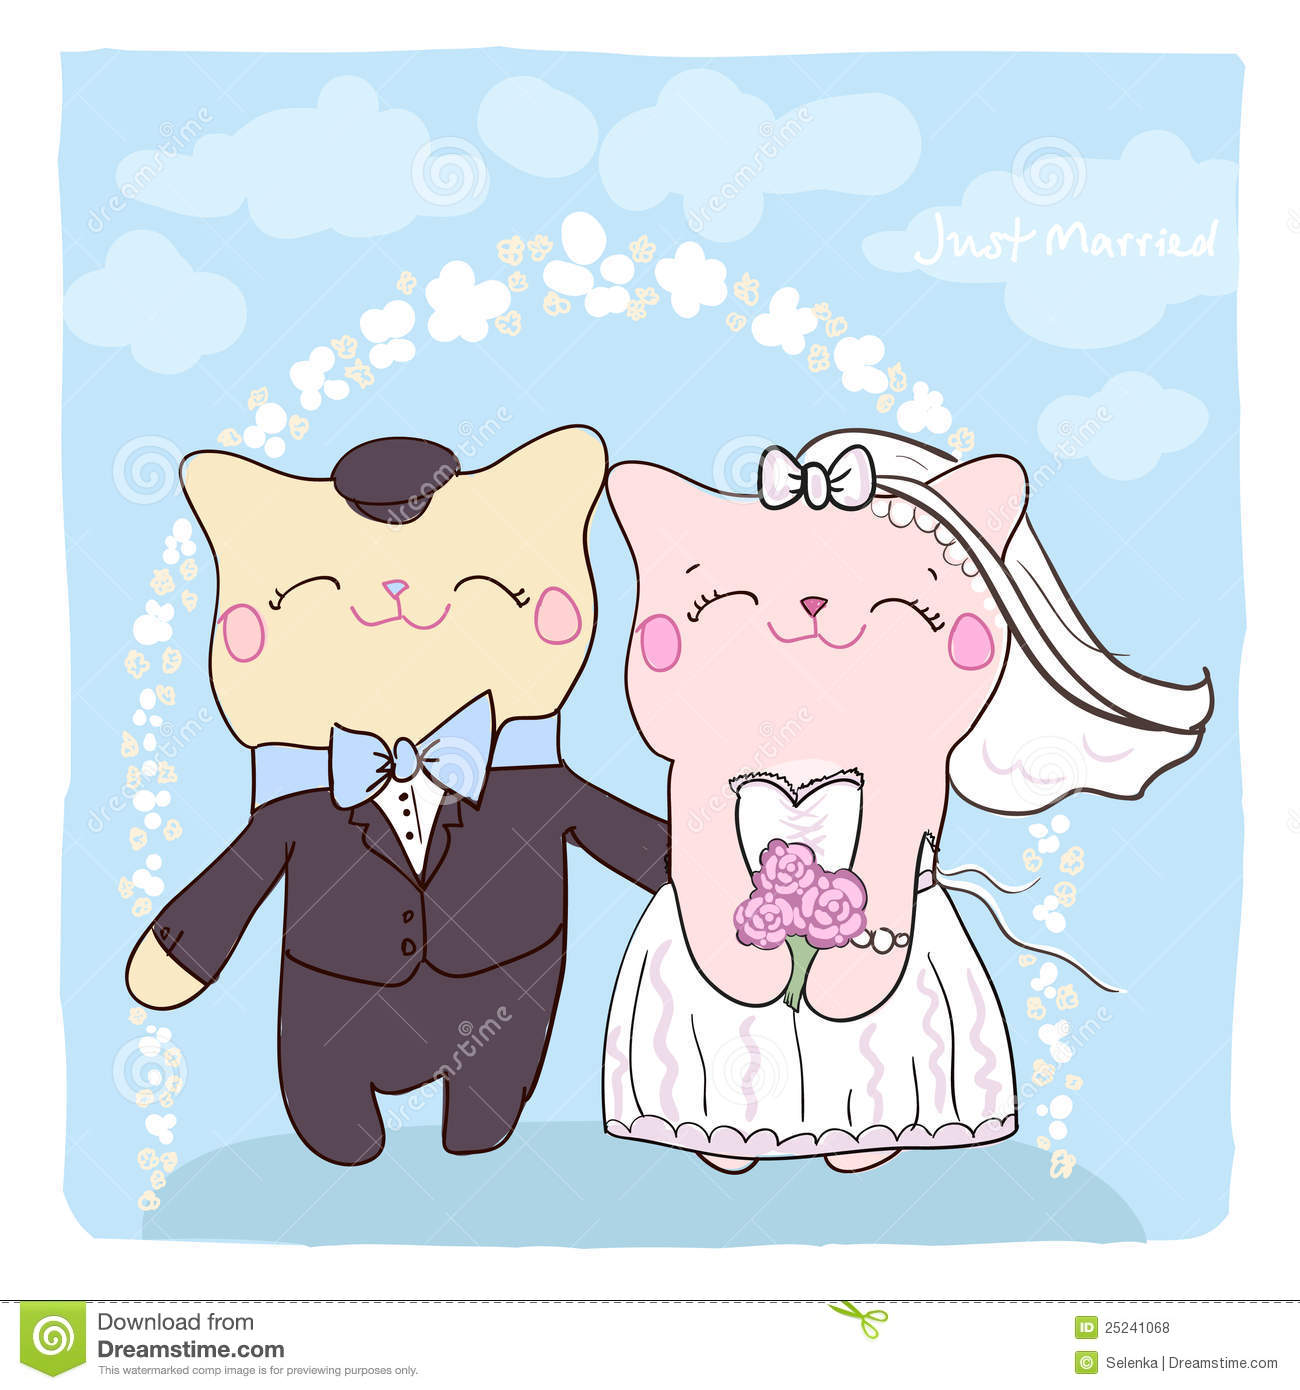 Funny Wishes For A Wedding Anniversary Cat